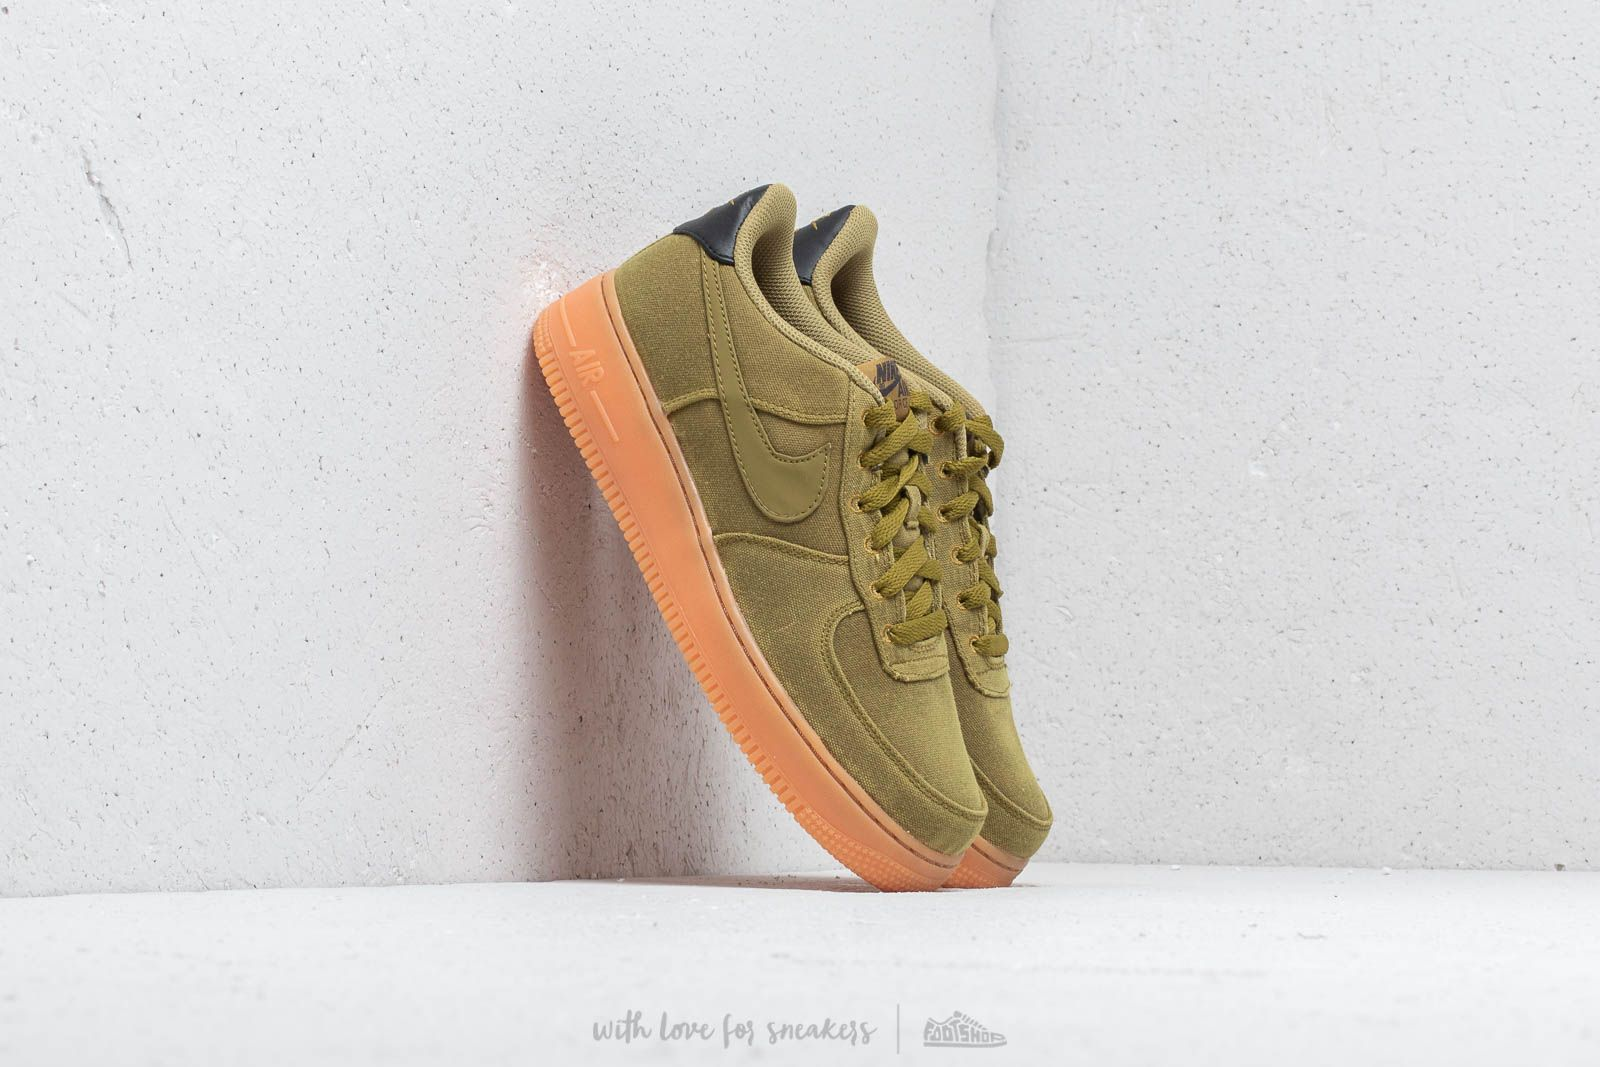 promo code 51c0c b5bd7 Nike Air Force 1 LV8 Style (GS) Camper Green  Camper Green